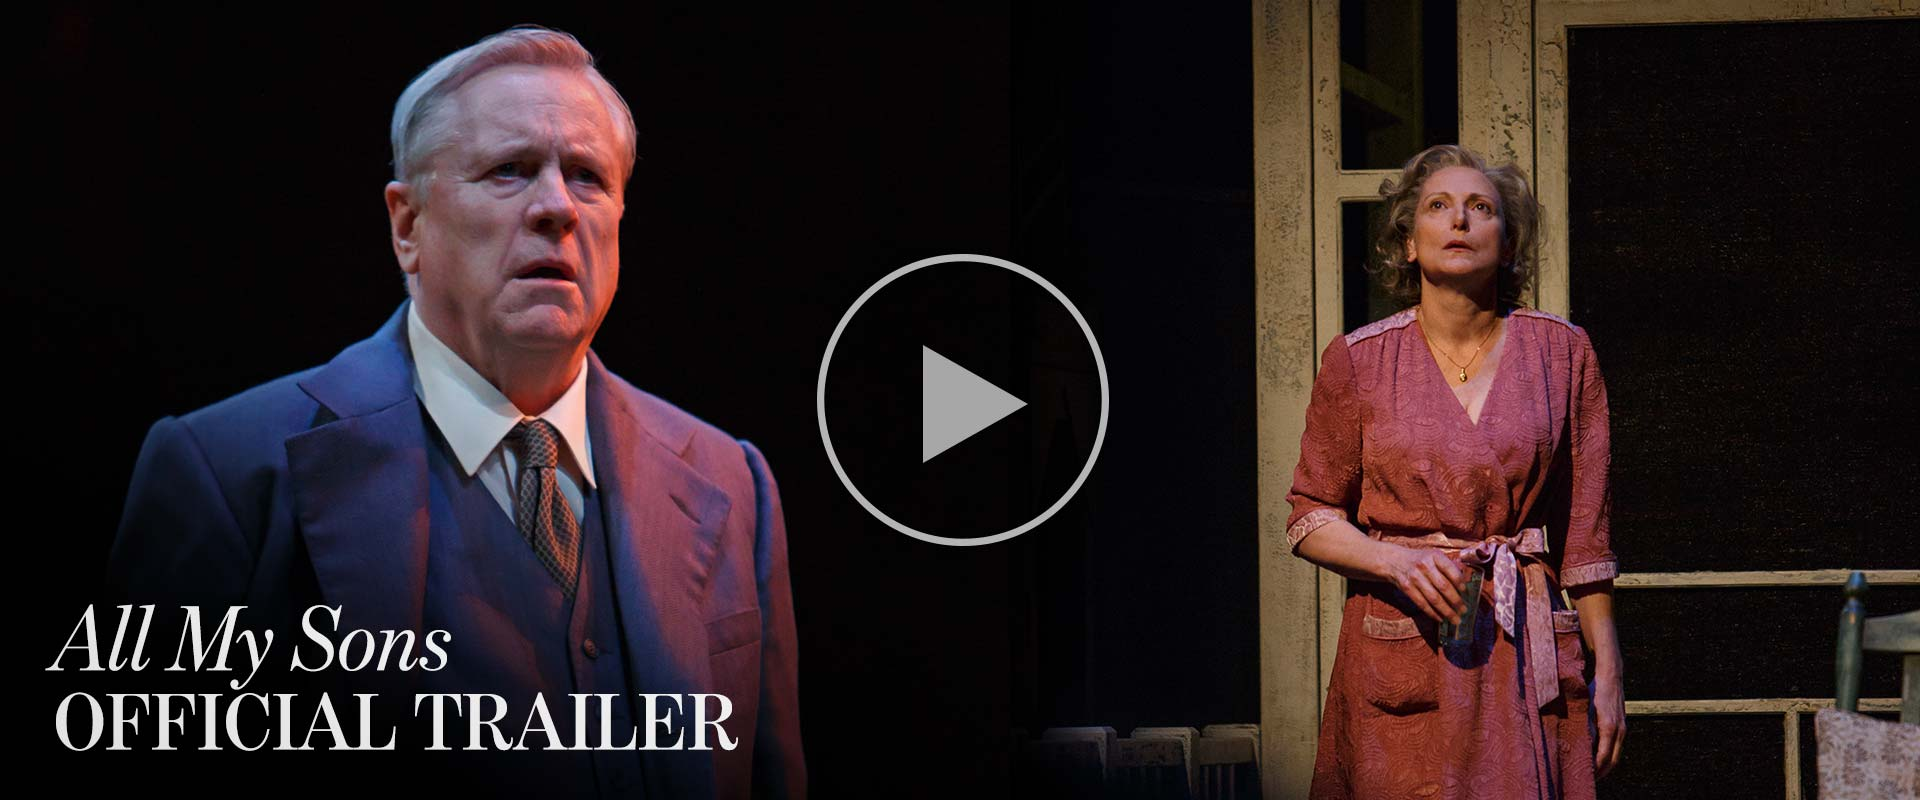 All My Sons Official Trailer